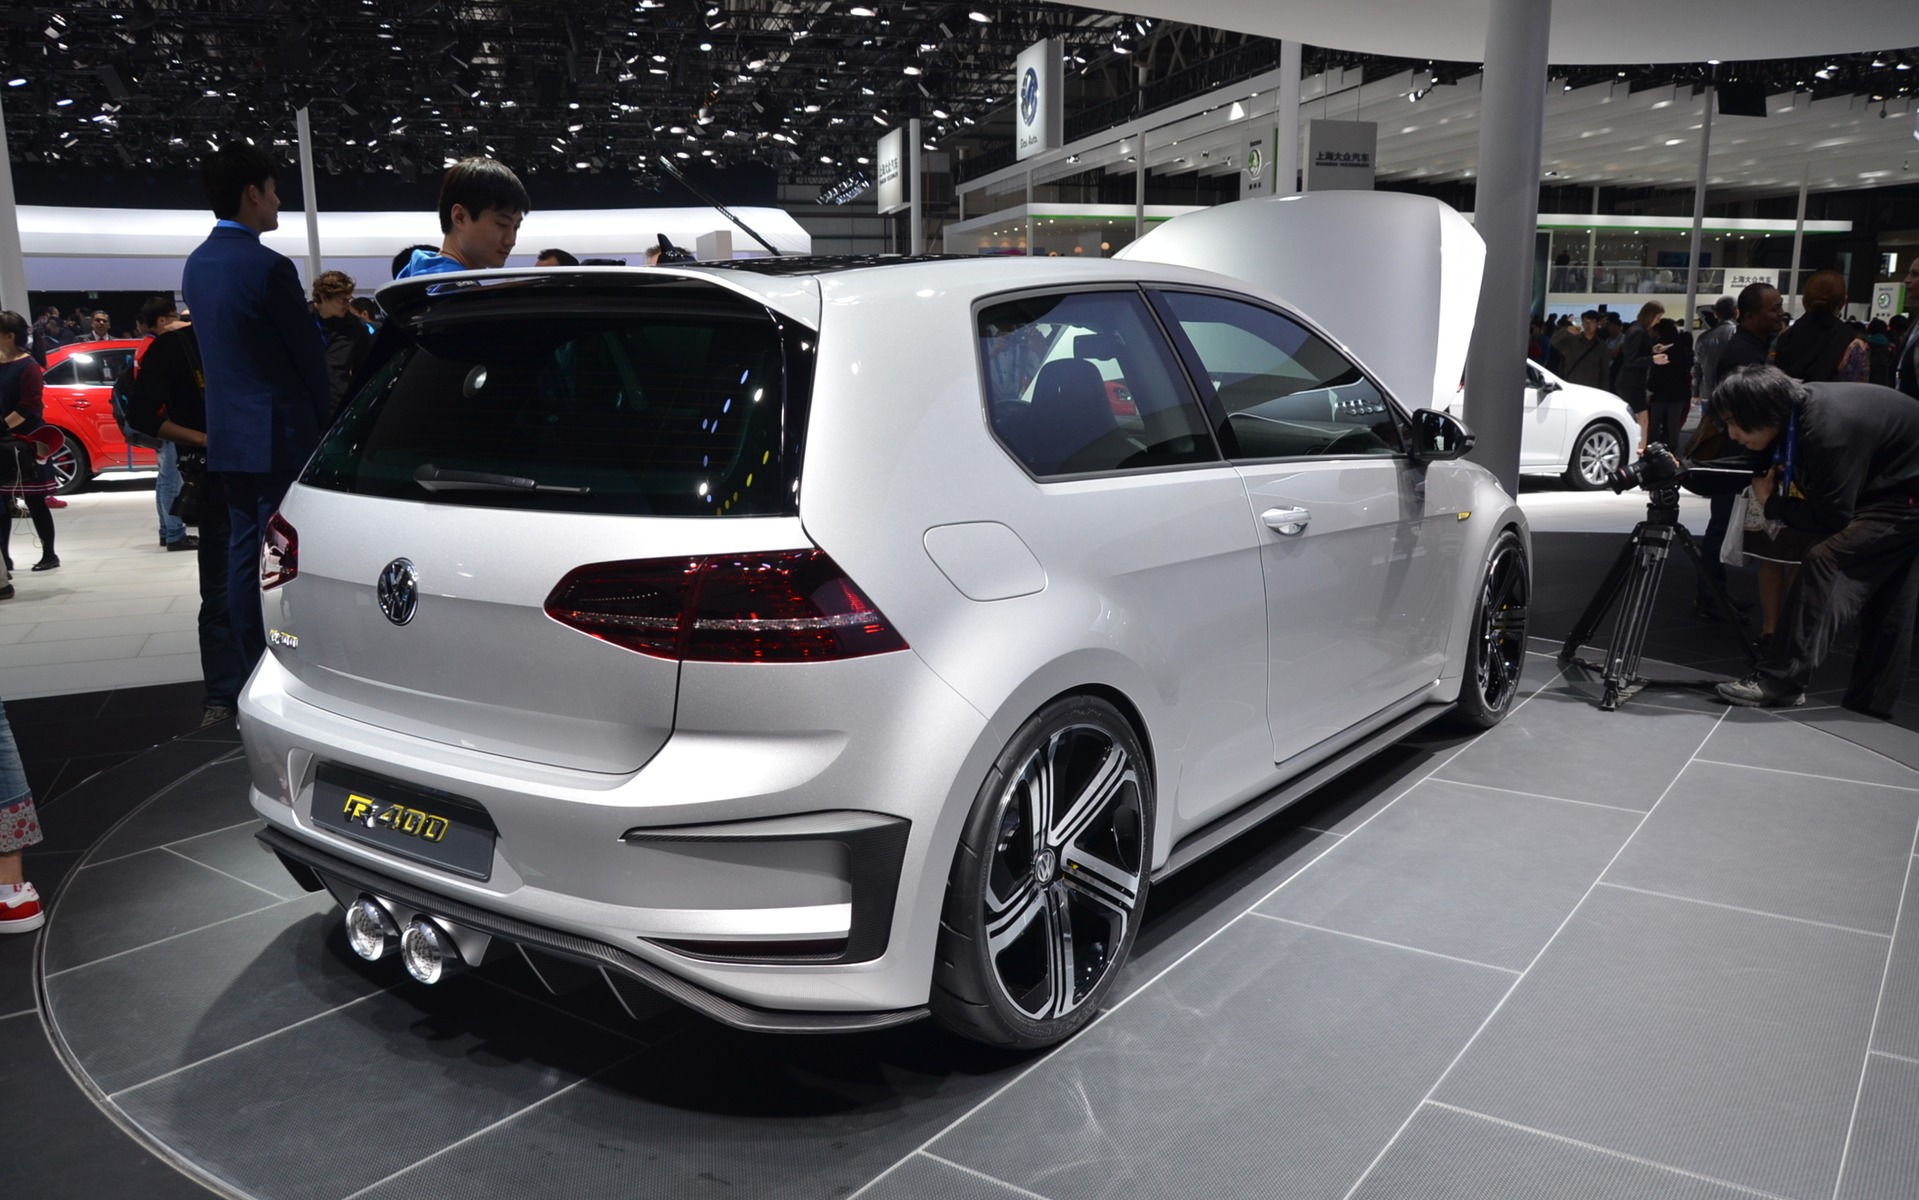 volkswagen golf r400 galerie photo 4 5 le guide de l 39 auto. Black Bedroom Furniture Sets. Home Design Ideas